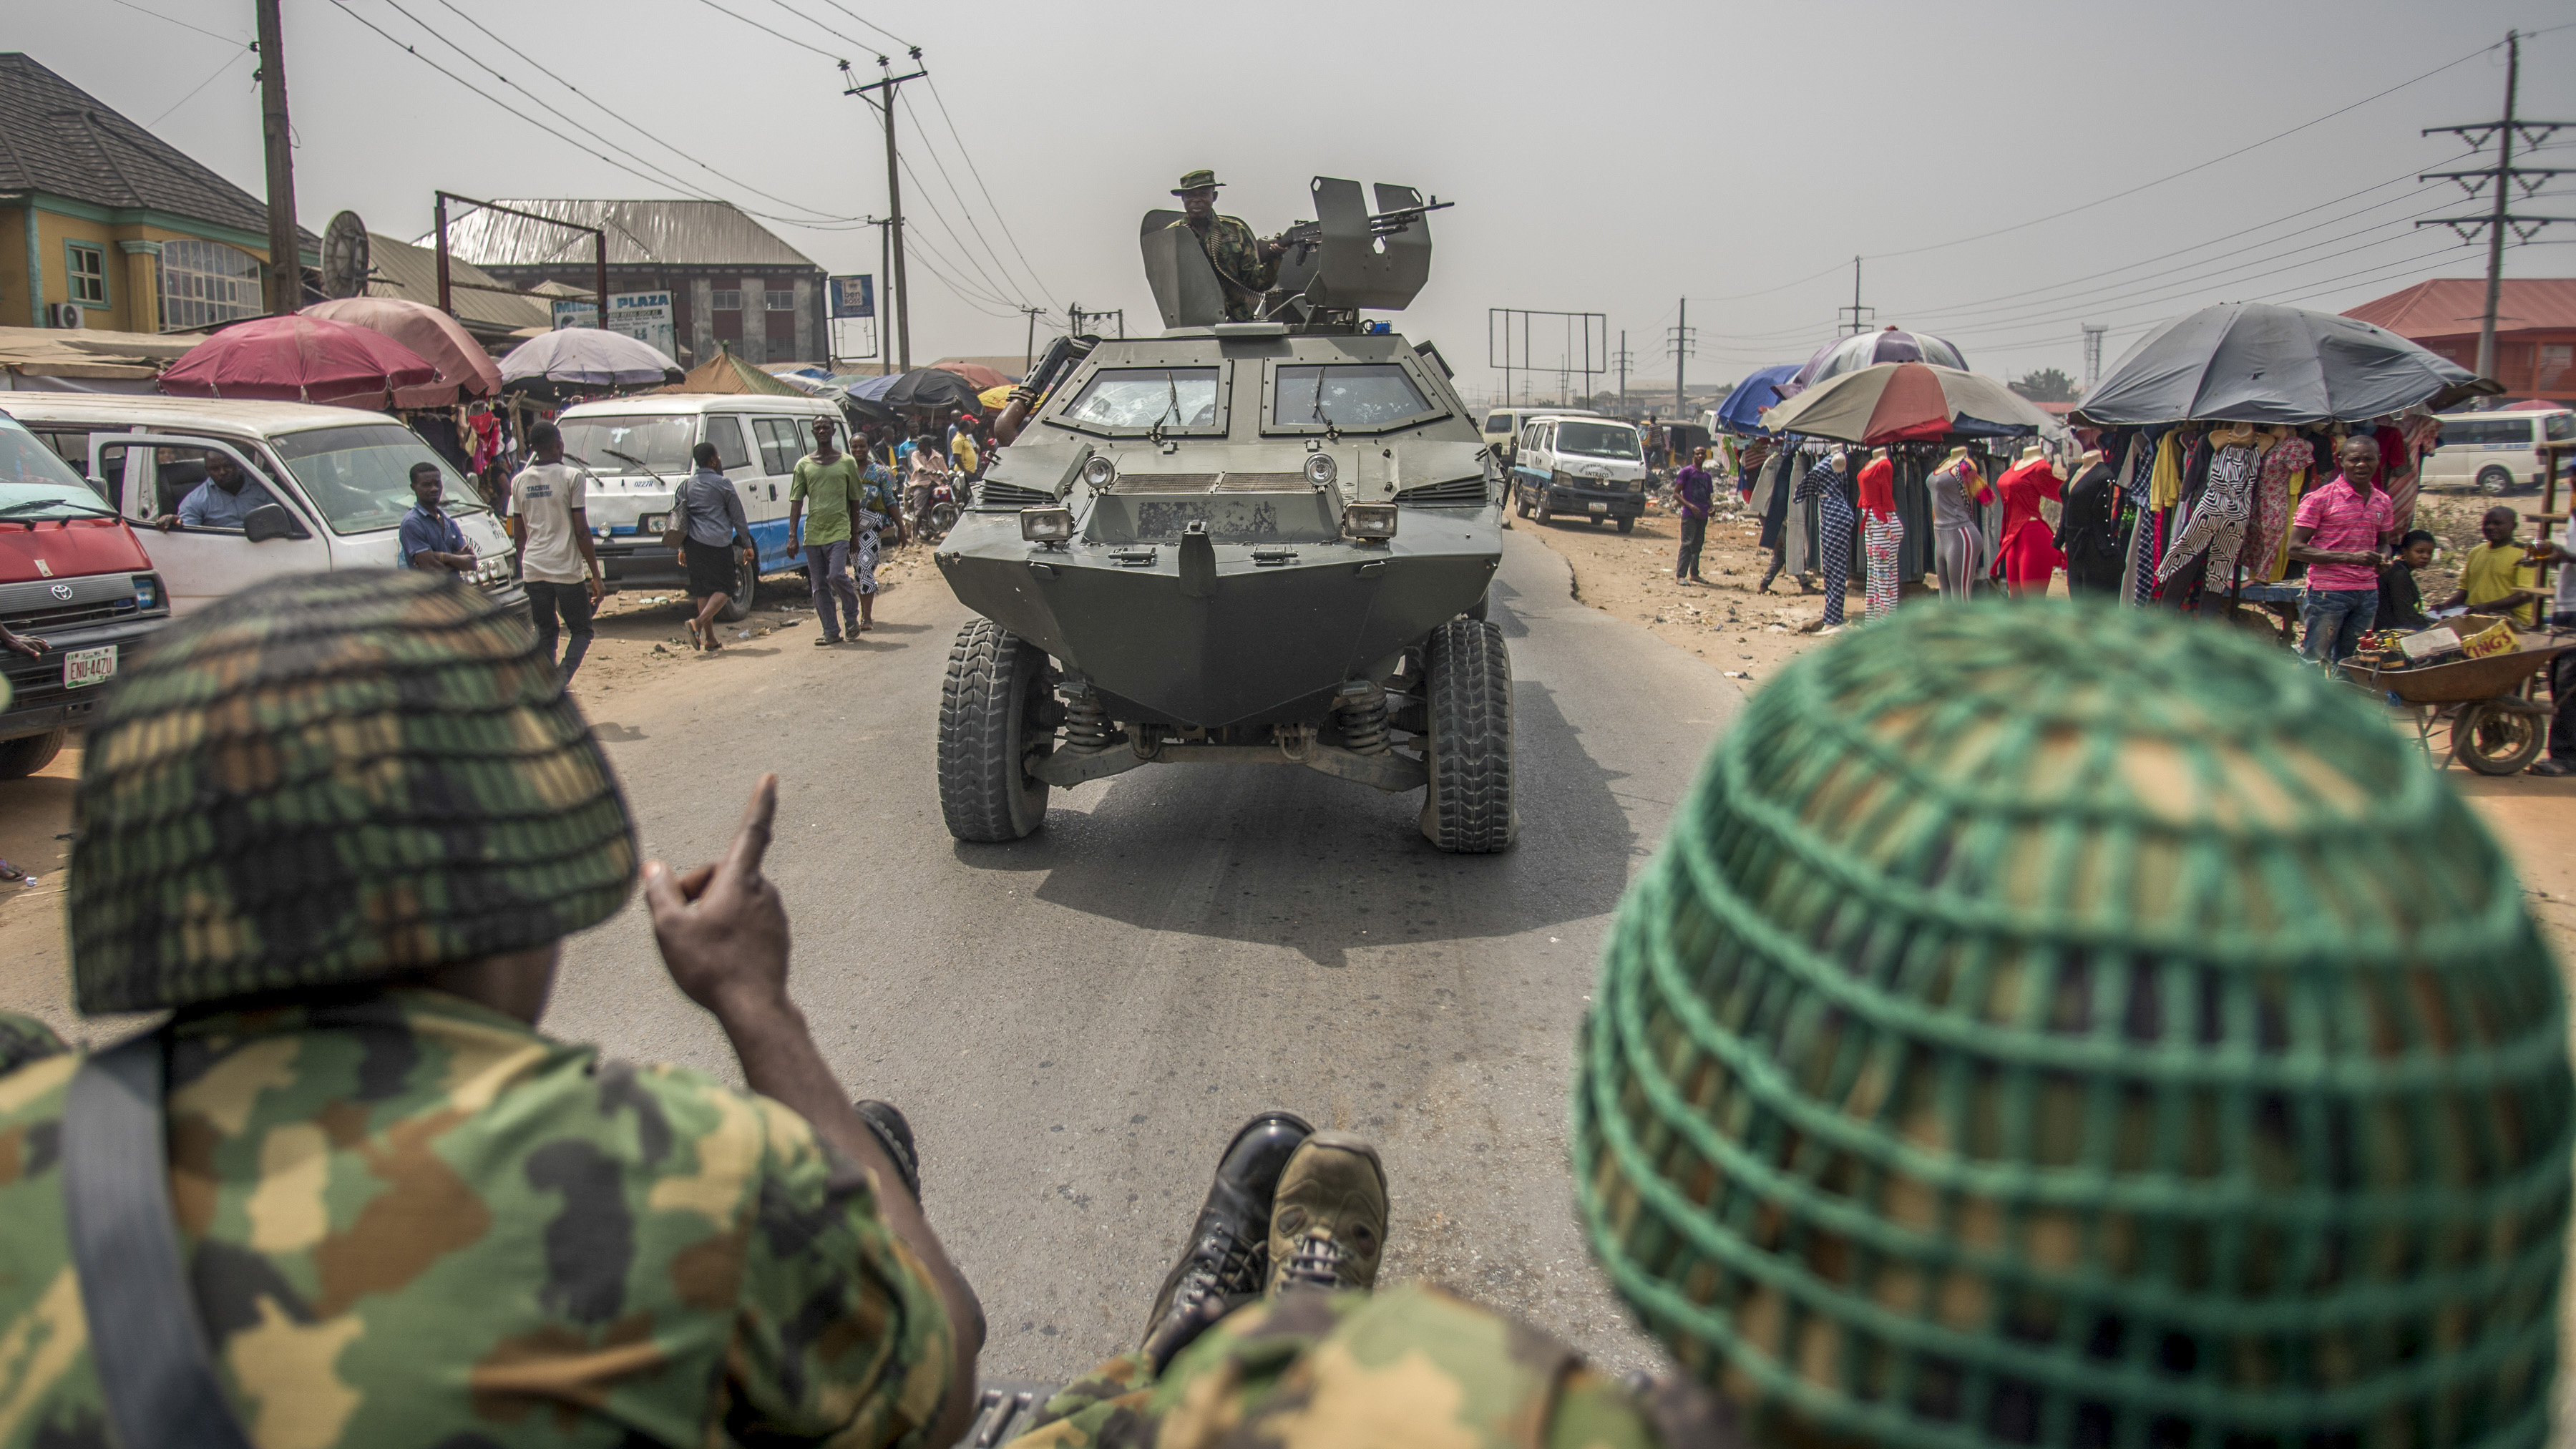 Nigerian soldiers and military convoy drive in Aba, in a pro-Biafra separatists zone, southeastern Nigeria, on February 15, 2019 during a military patrol. - The southeastern Nigeria region, that has long complained it has been marginalized by successive governments and military regimes since the end of the civil war in 1970, has been largely calm in the run-up to the election, but there has been a noticeable increase in military and police checkpoints, AFP correspondents said. (CRISTINA ALDEHUELA/AFP/Getty Images)